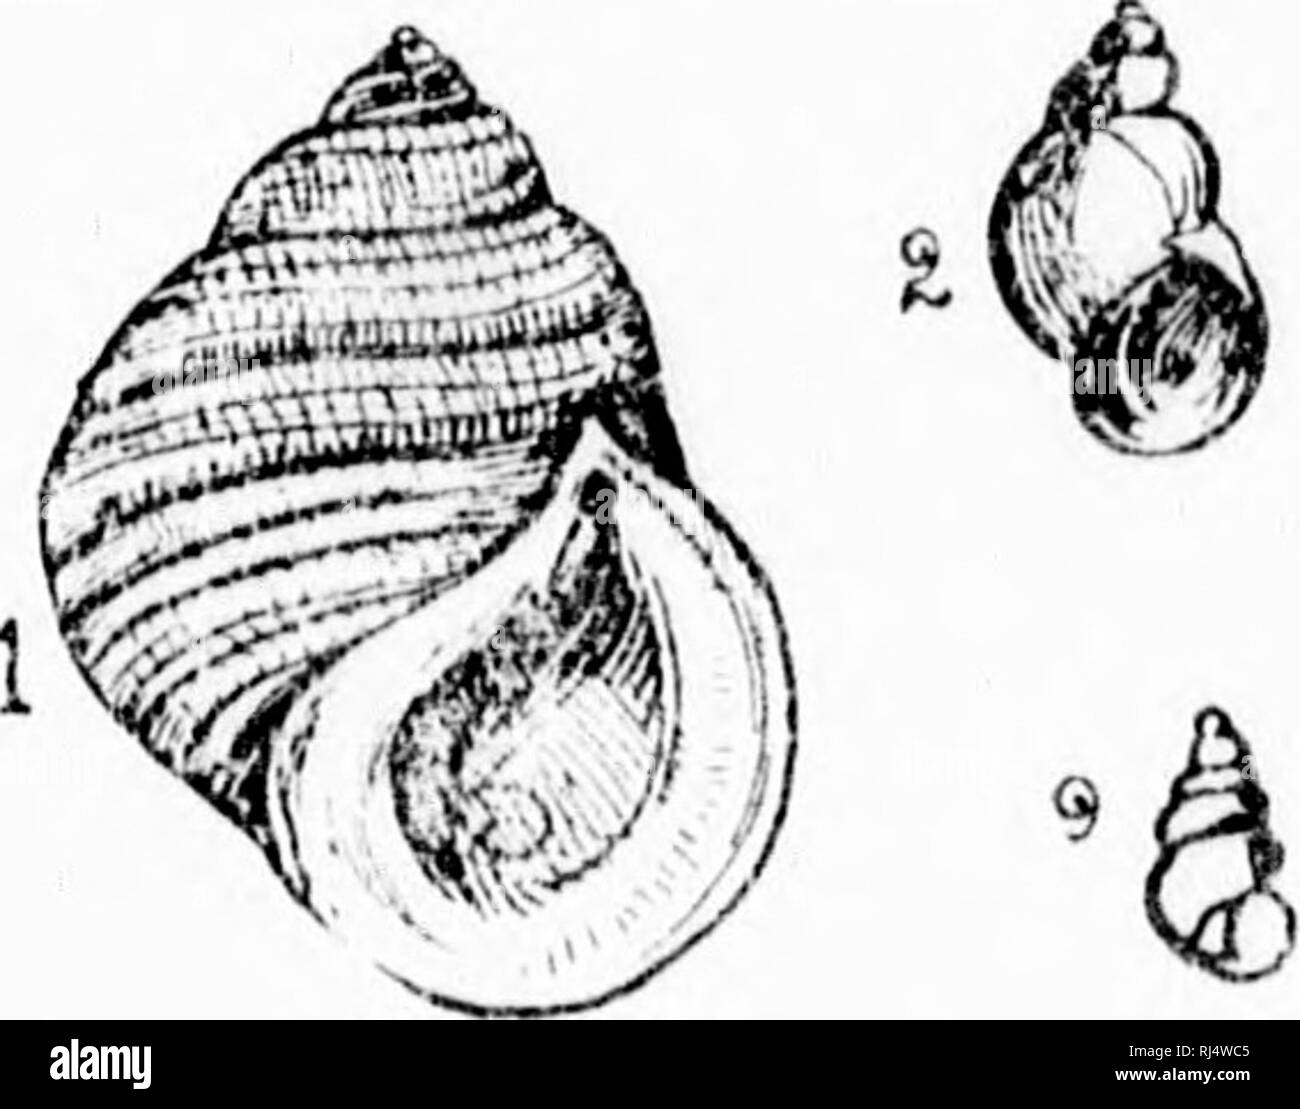 . Les mollusques de la province de Québec [microforme] : première partie, les céphalopodes, ptéropodes et gastropodes. Mollusques; Céphalopodes; Mollusks; Cephalopoda. PL. ^V. Please note that these images are extracted from scanned page images that may have been digitally enhanced for readability - coloration and appearance of these illustrations may not perfectly resemble the original work.. Provancher, L. , 1820-1892. [Québec? : s. n. ] - Stock Image